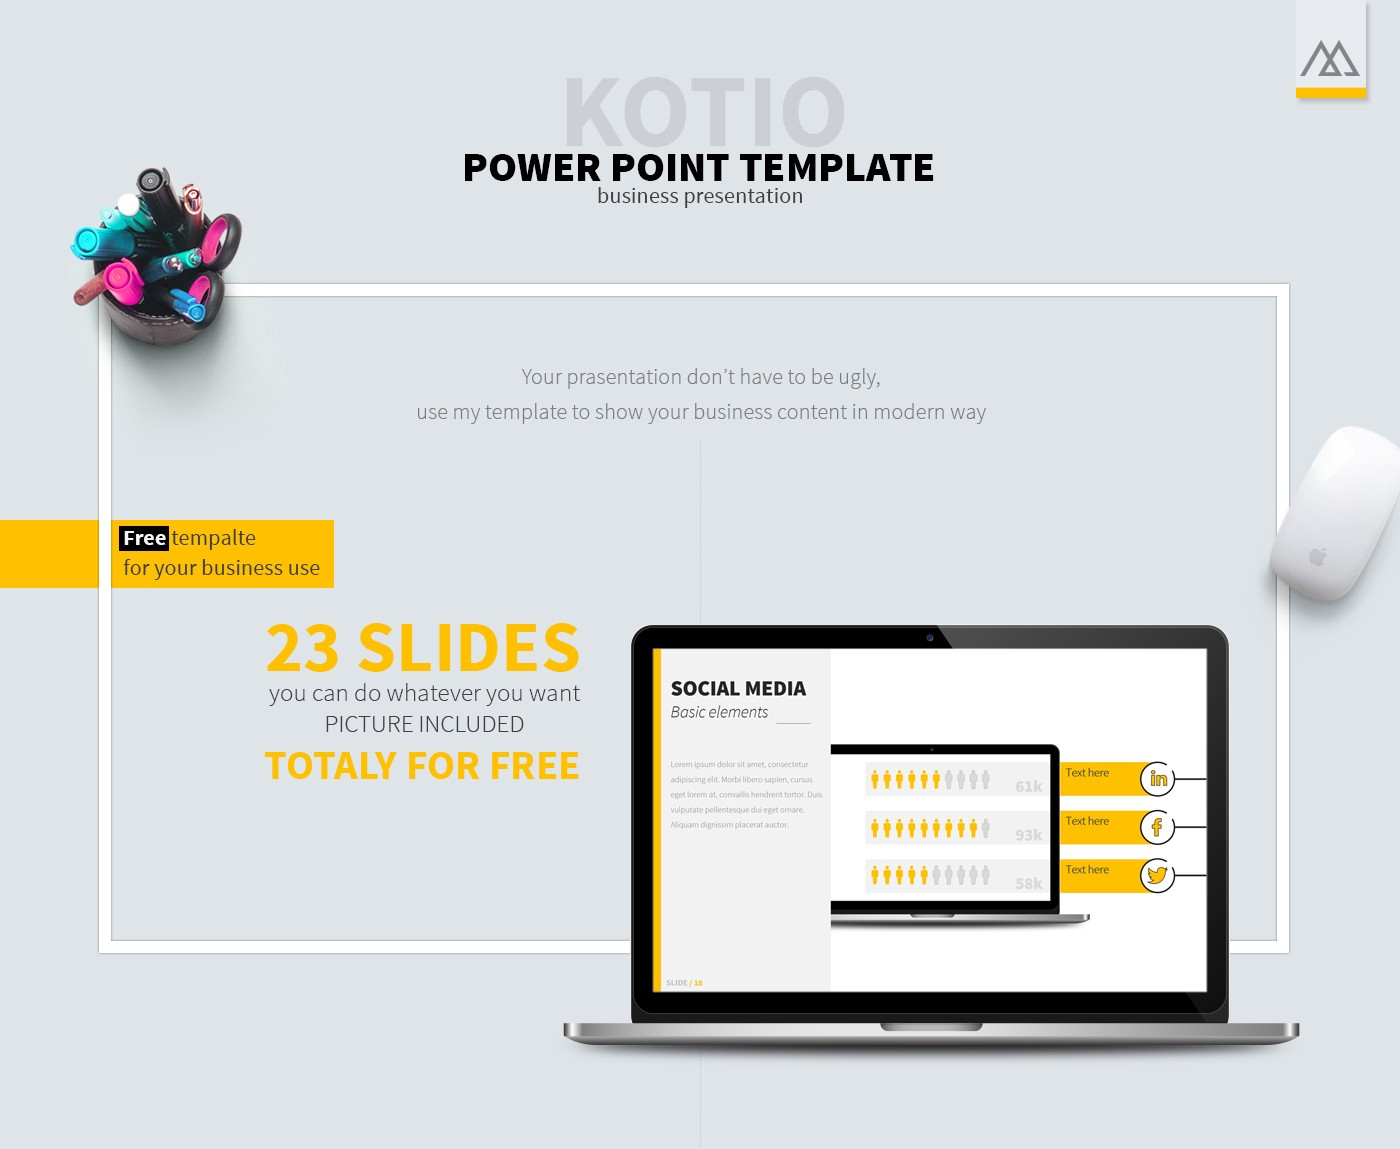 40 free cool powerpoint templates for presentations you can customize every slide to fit your presentation and its ready to use photos are easy to access therefore no time wasted wajeb Images